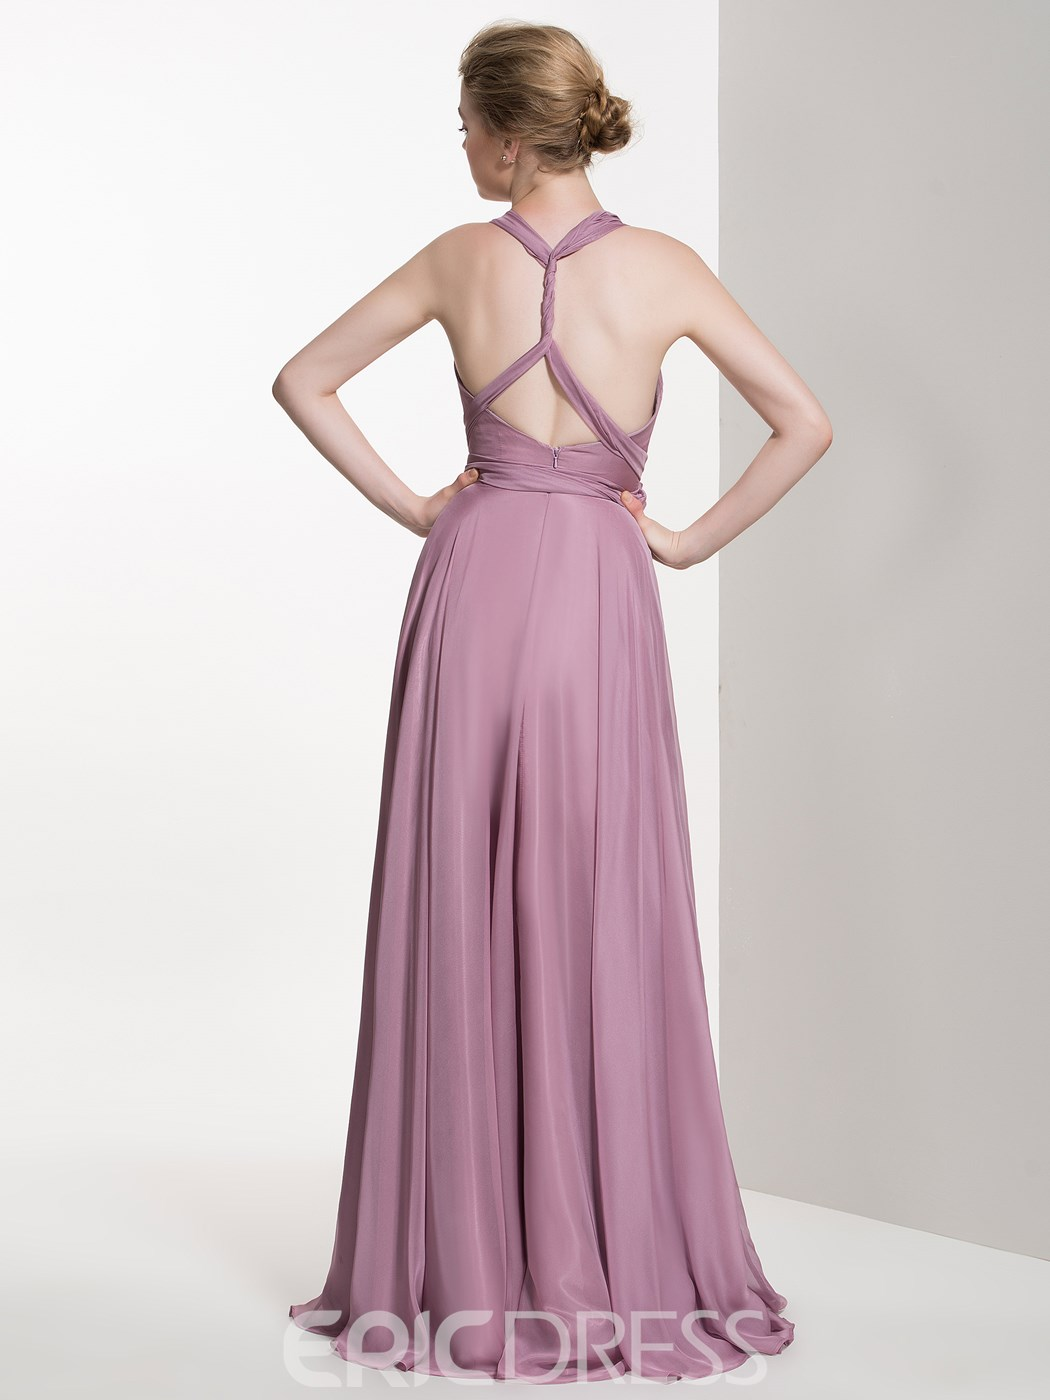 Ericdrress Beautiful Straps A Line Long Bridesmaid Dress